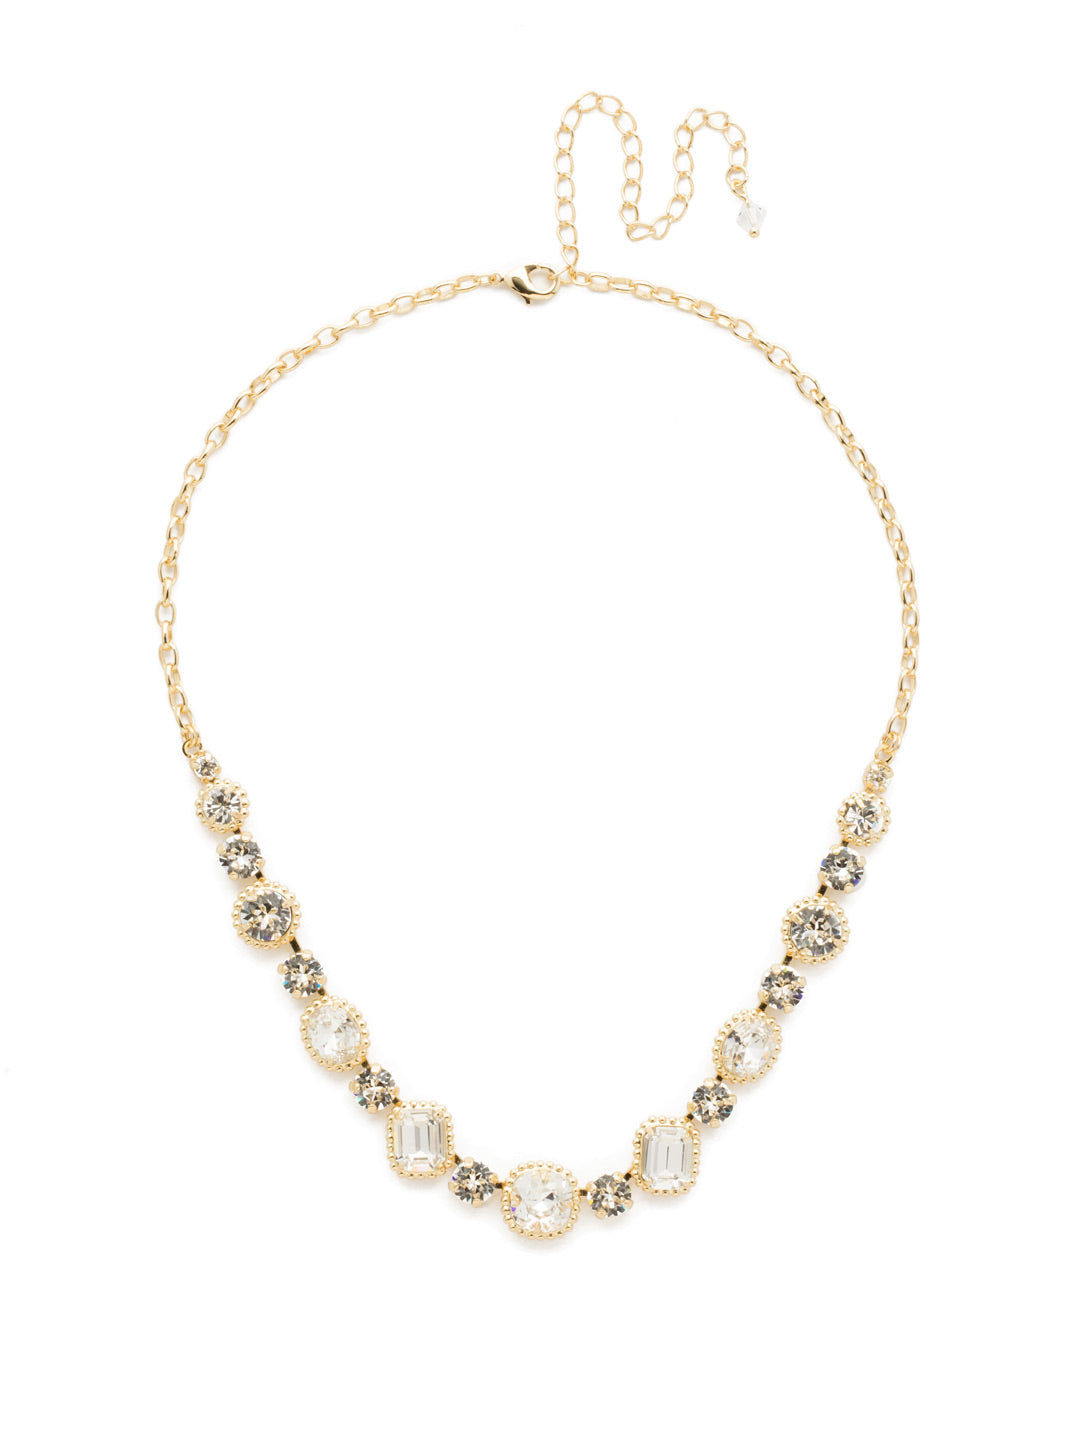 Embellished Elegance Necklace - NDK14BGCRY